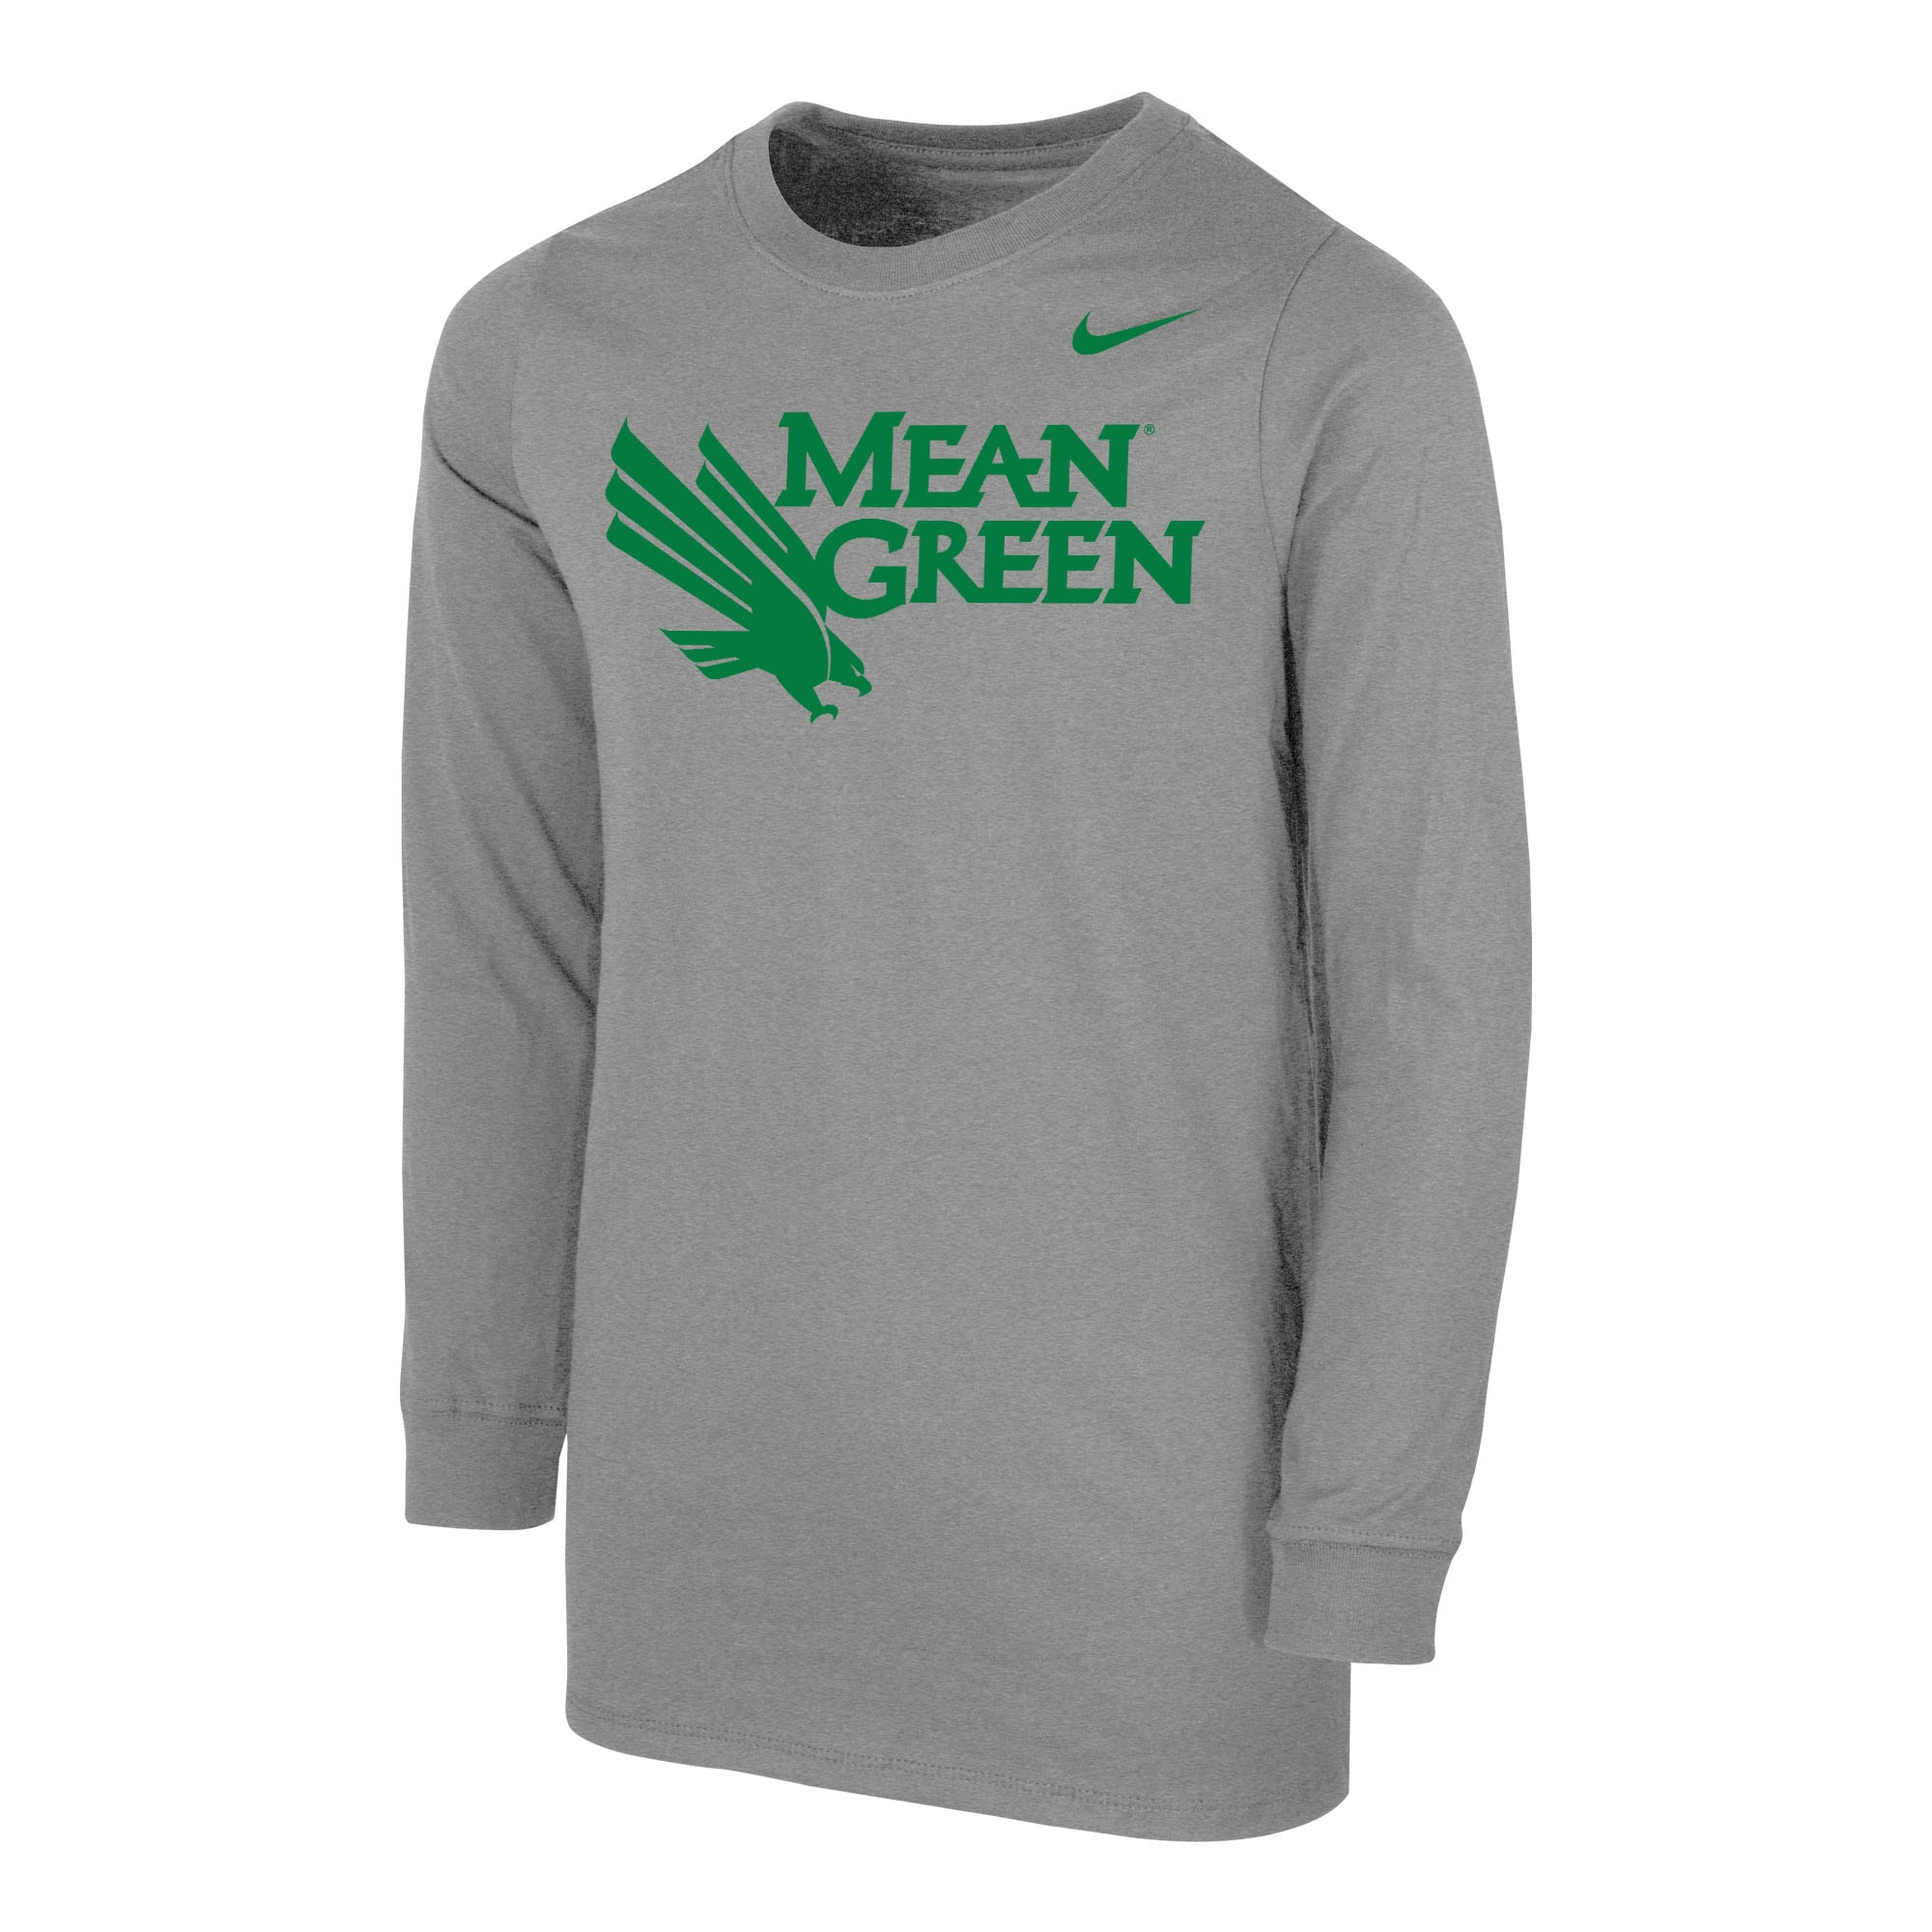 University of North Texas Nike Youth Cotton Long Sleeve T-Shirt